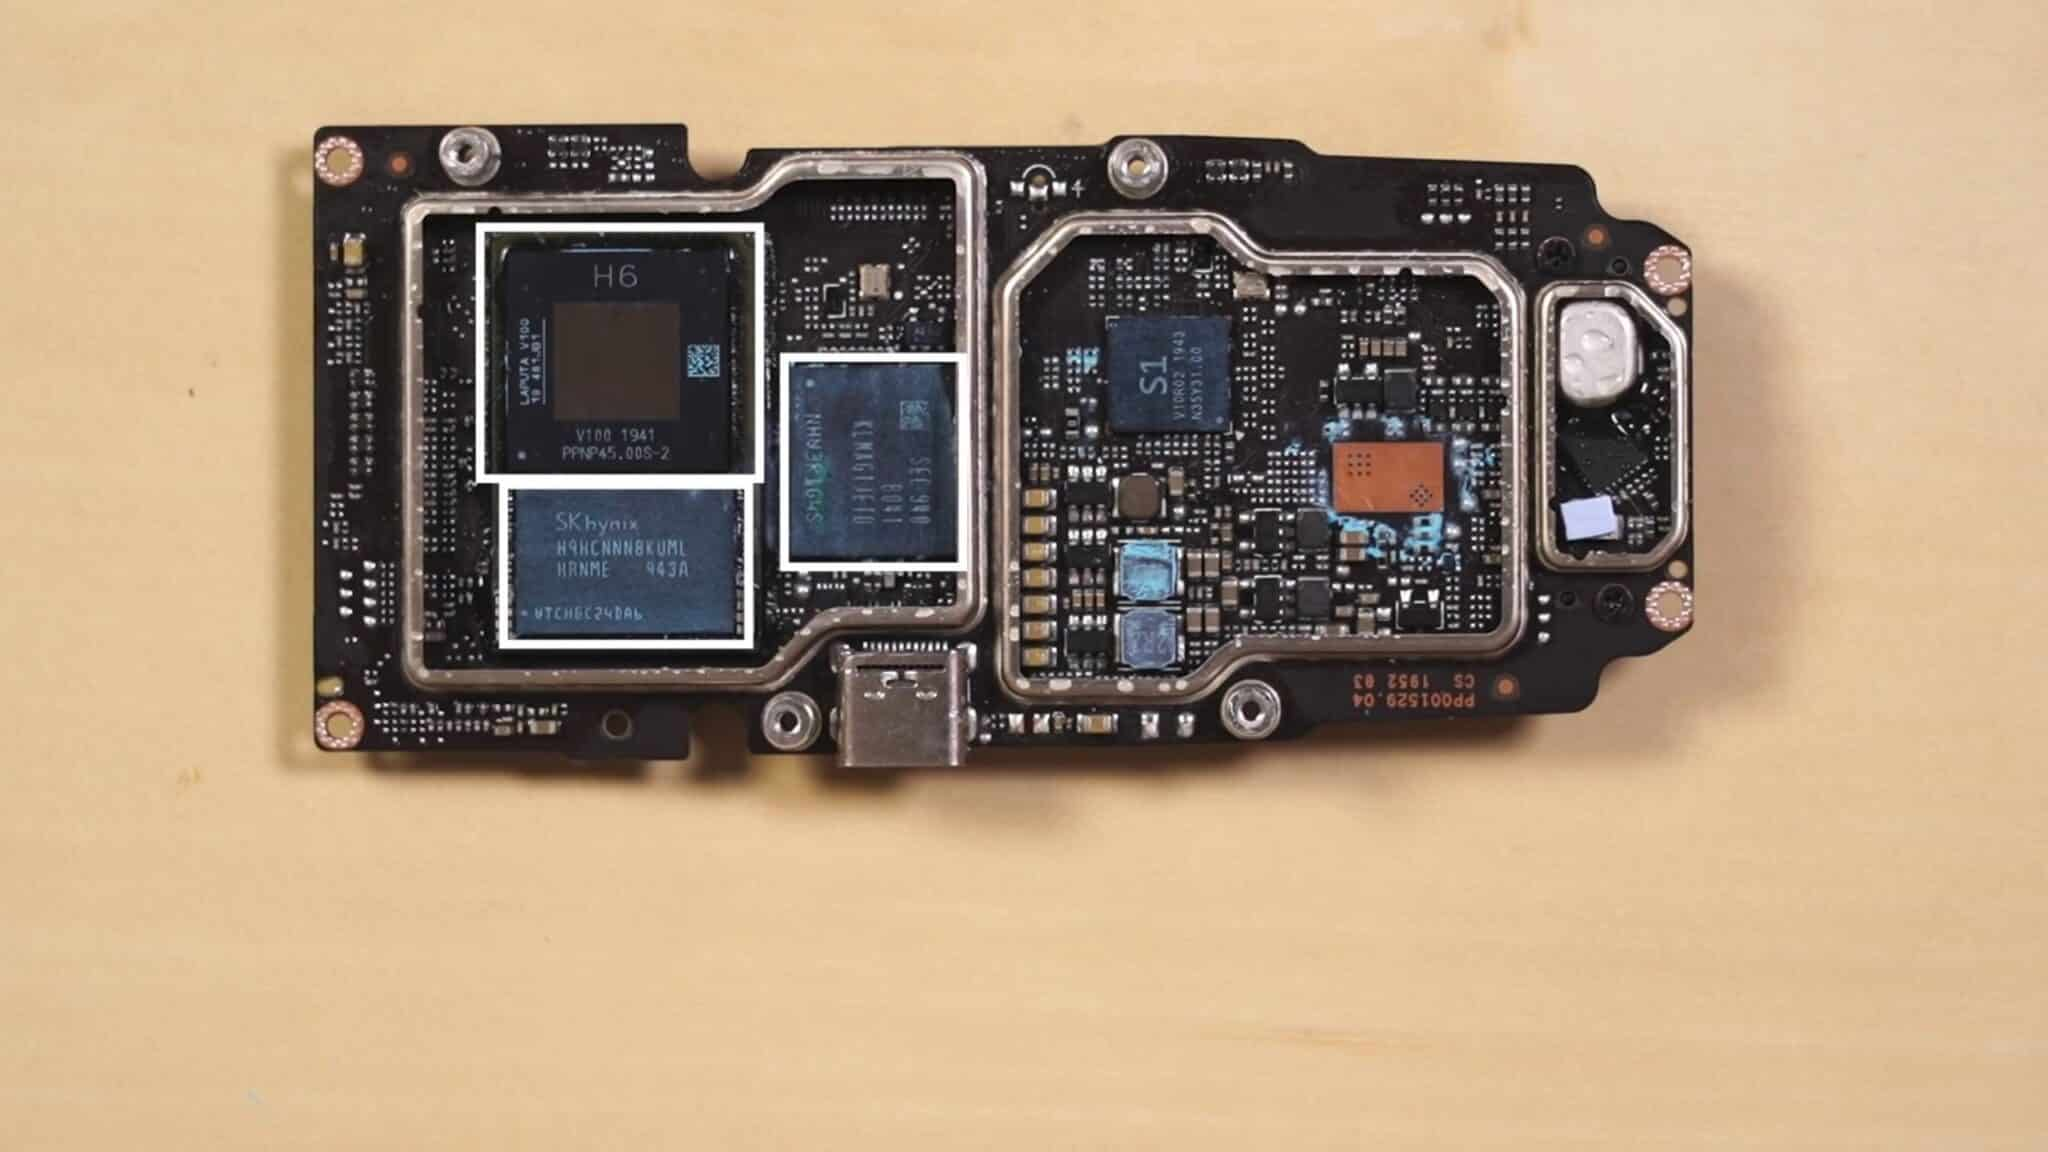 DJI Mavic Air 2 teardown video shows H6 processor